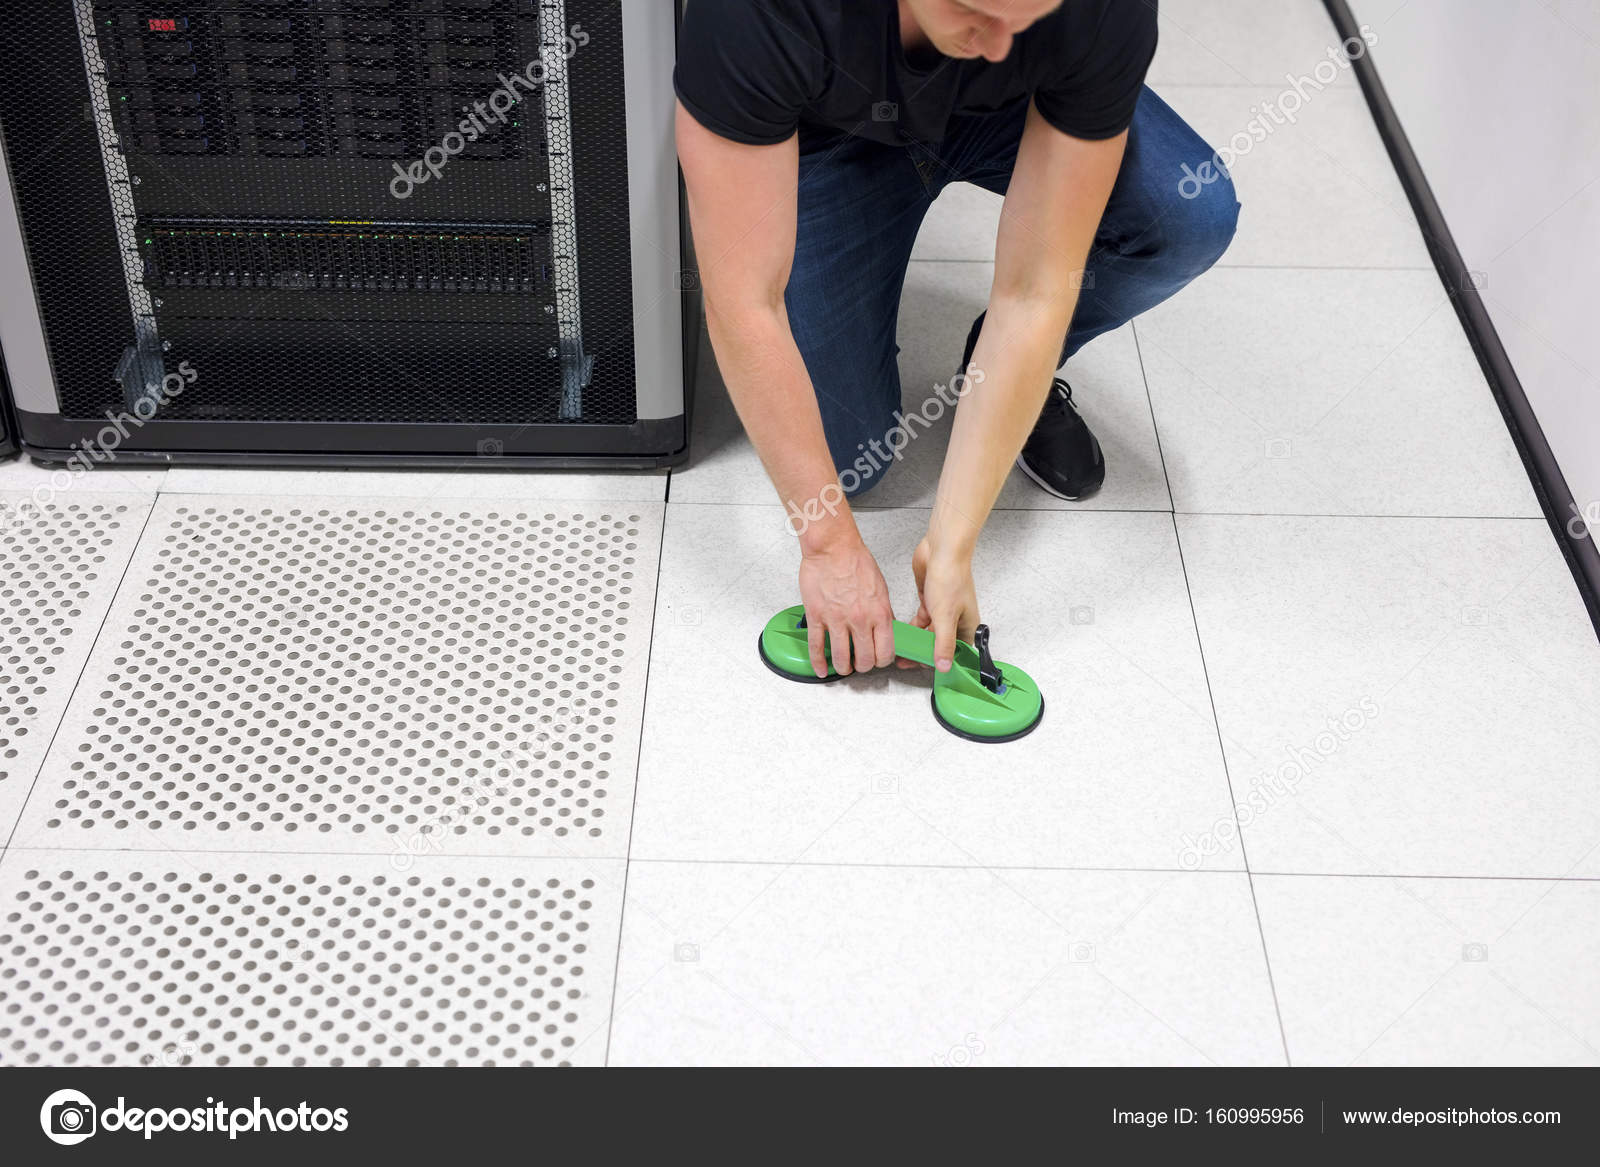 Engineer Lifting Floor Tile Using Vacuum Suction Cups In Datacen